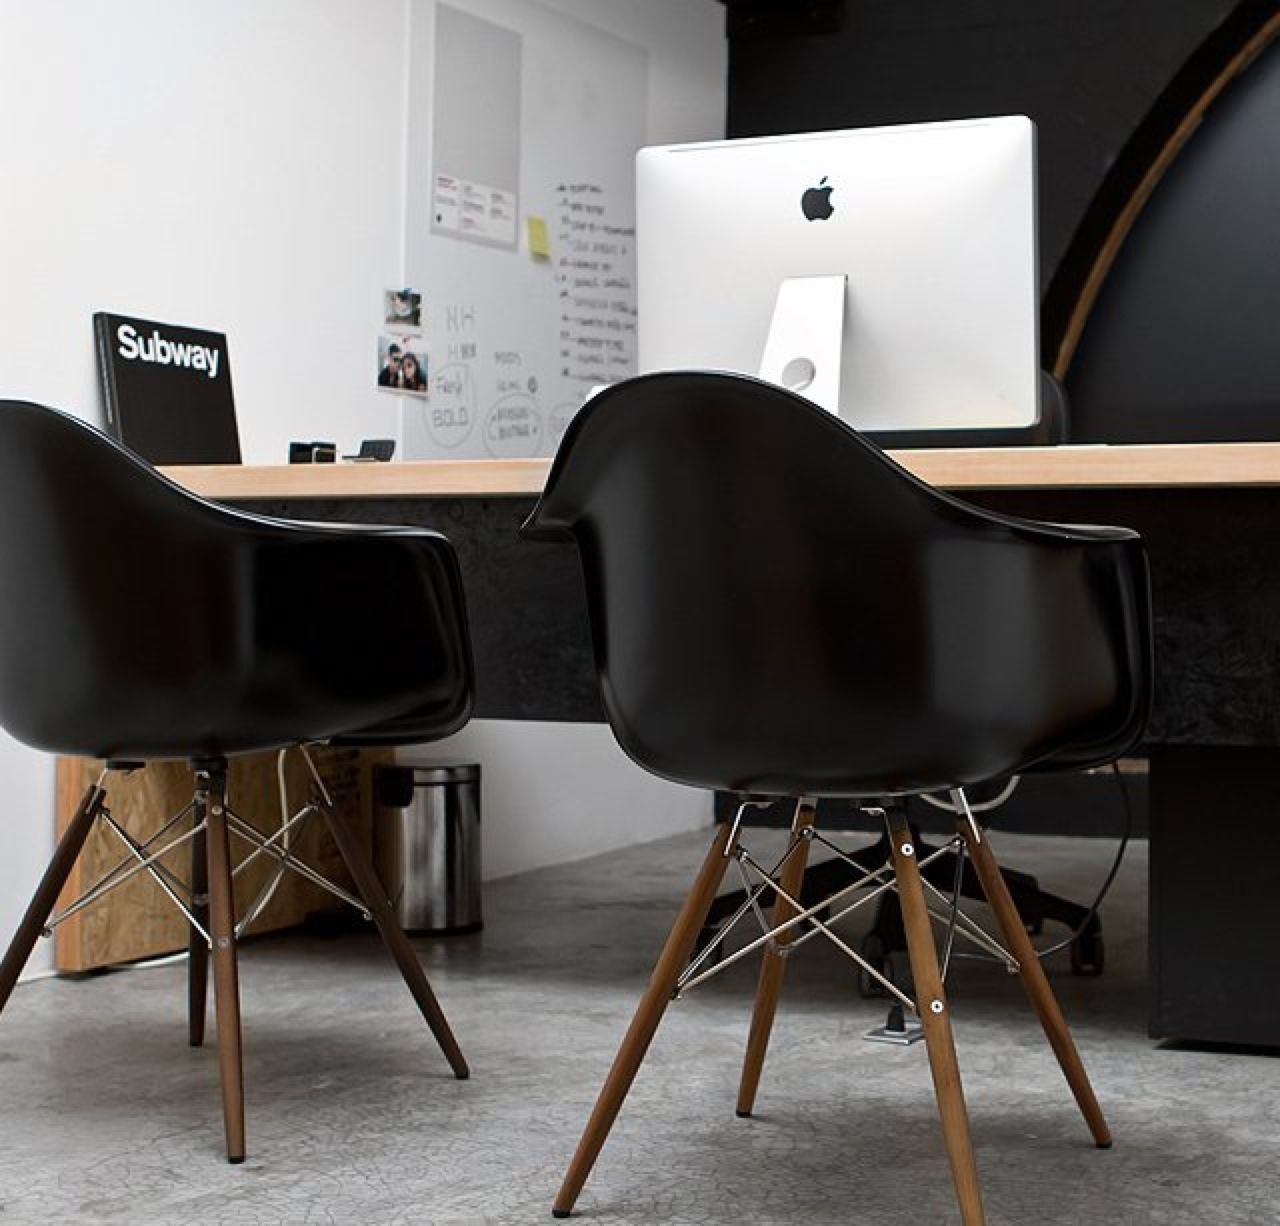 1000+ images about DESIGN I EAMES CHAIR on Pinterest